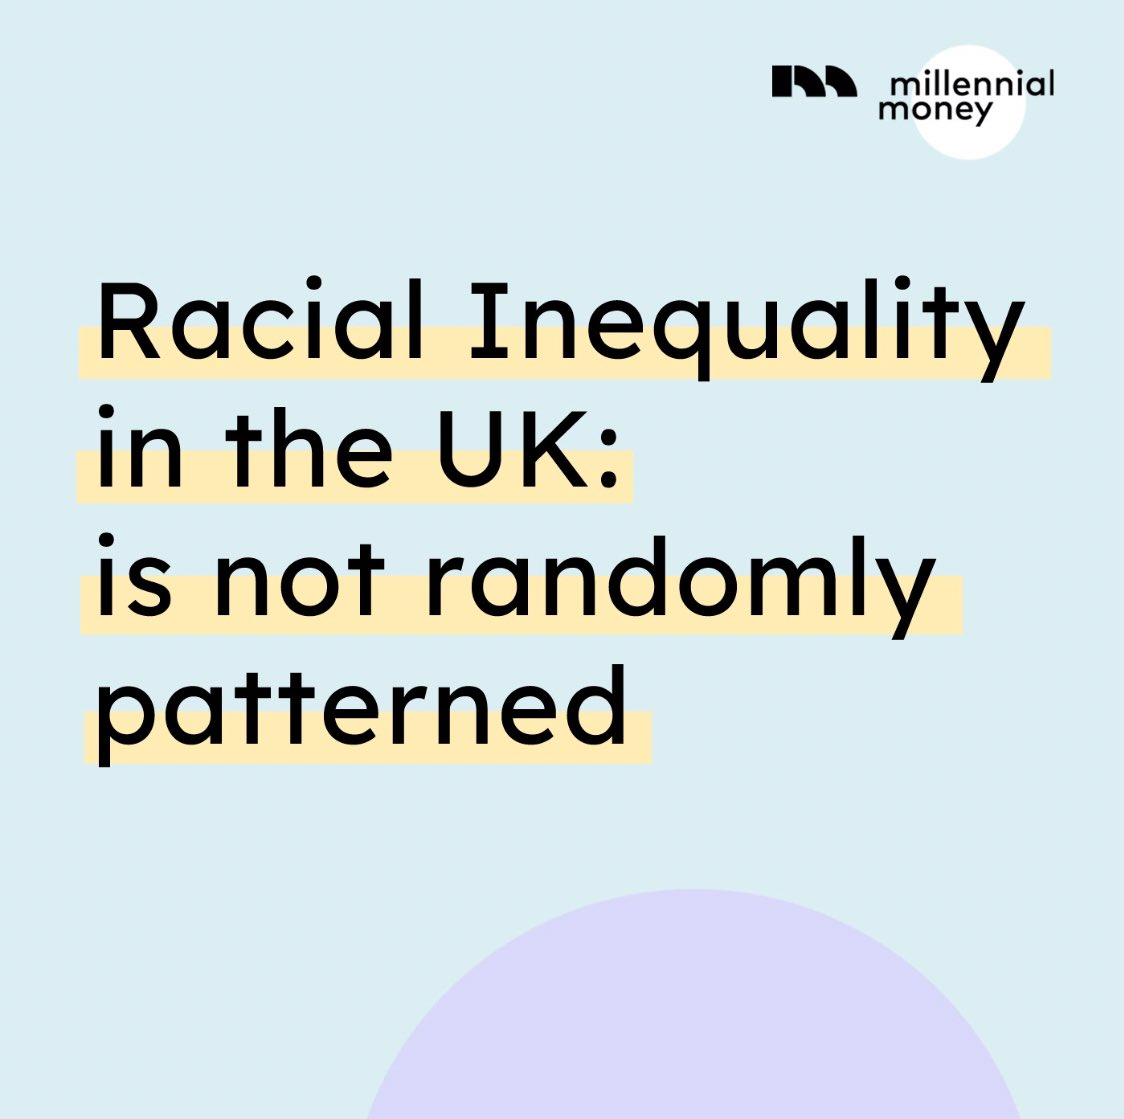 """When we talk about """"systemic"""" racism and the guises in which that system manifests, we have to also look at the economy, and track the historical and contemporary injustices committed against black people in the U.K. https://t.co/8hnh2KeKTc"""